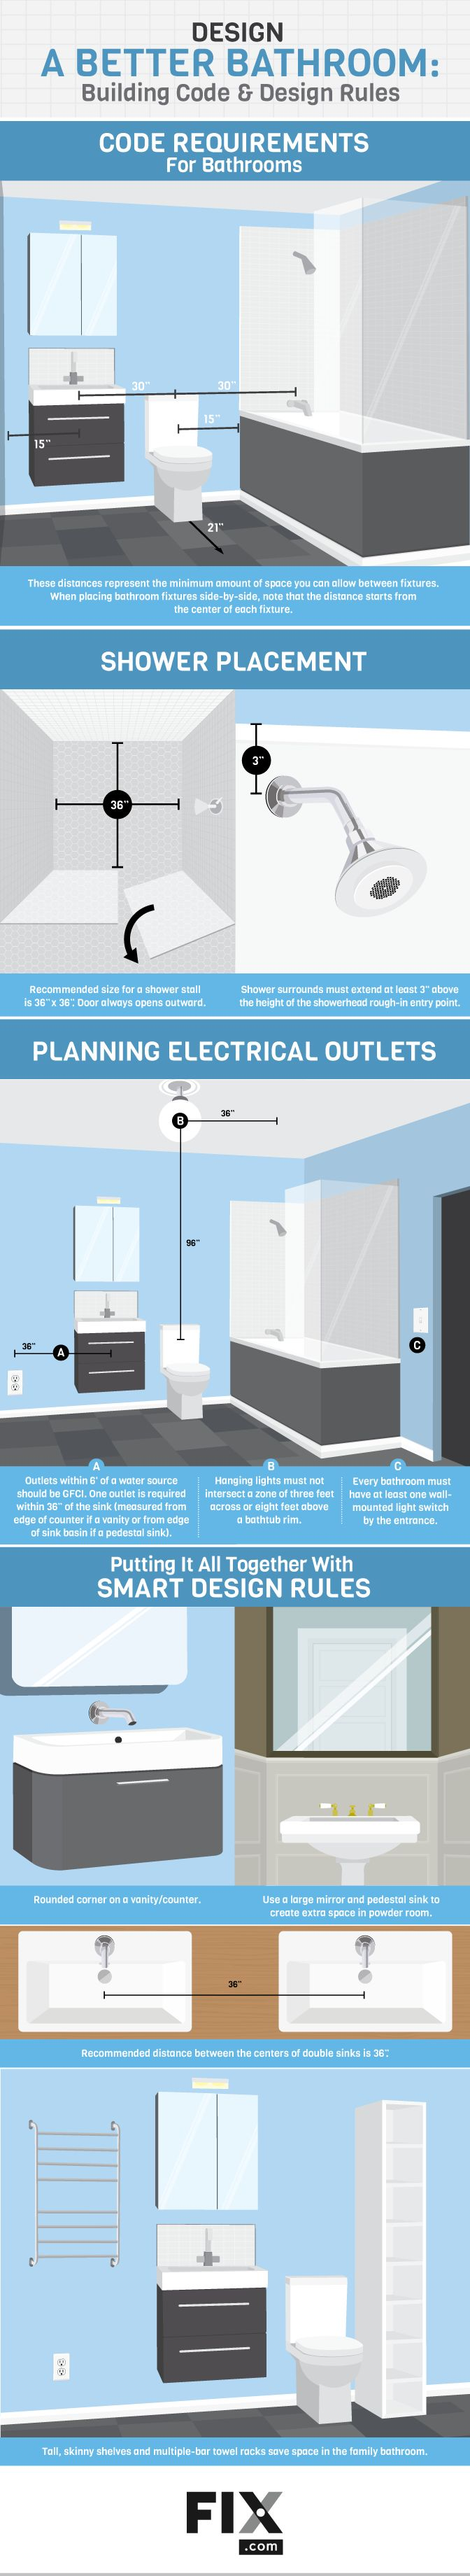 Learn How Building Code And Good Design Rules Can Help You Design A Better Bathroom